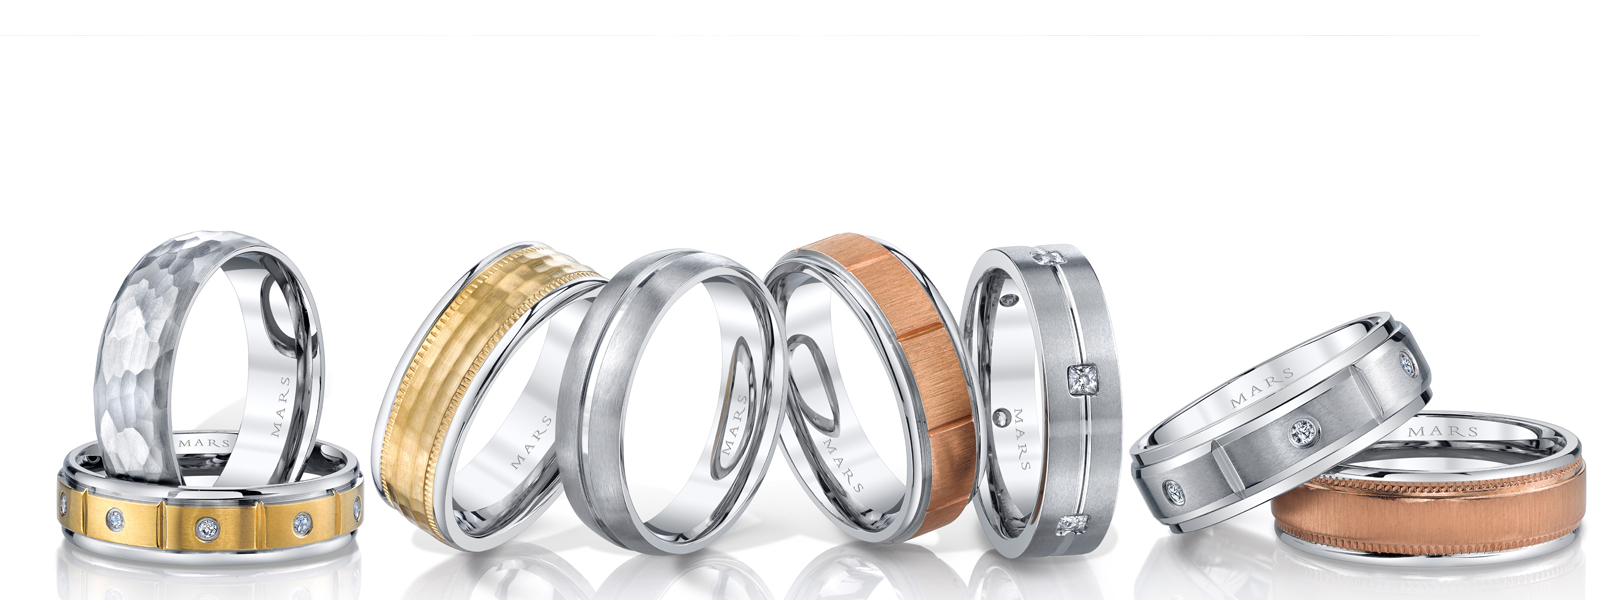 Men's Fine Wedding Bands at Arezzo Jewelers - Chicago, IL.